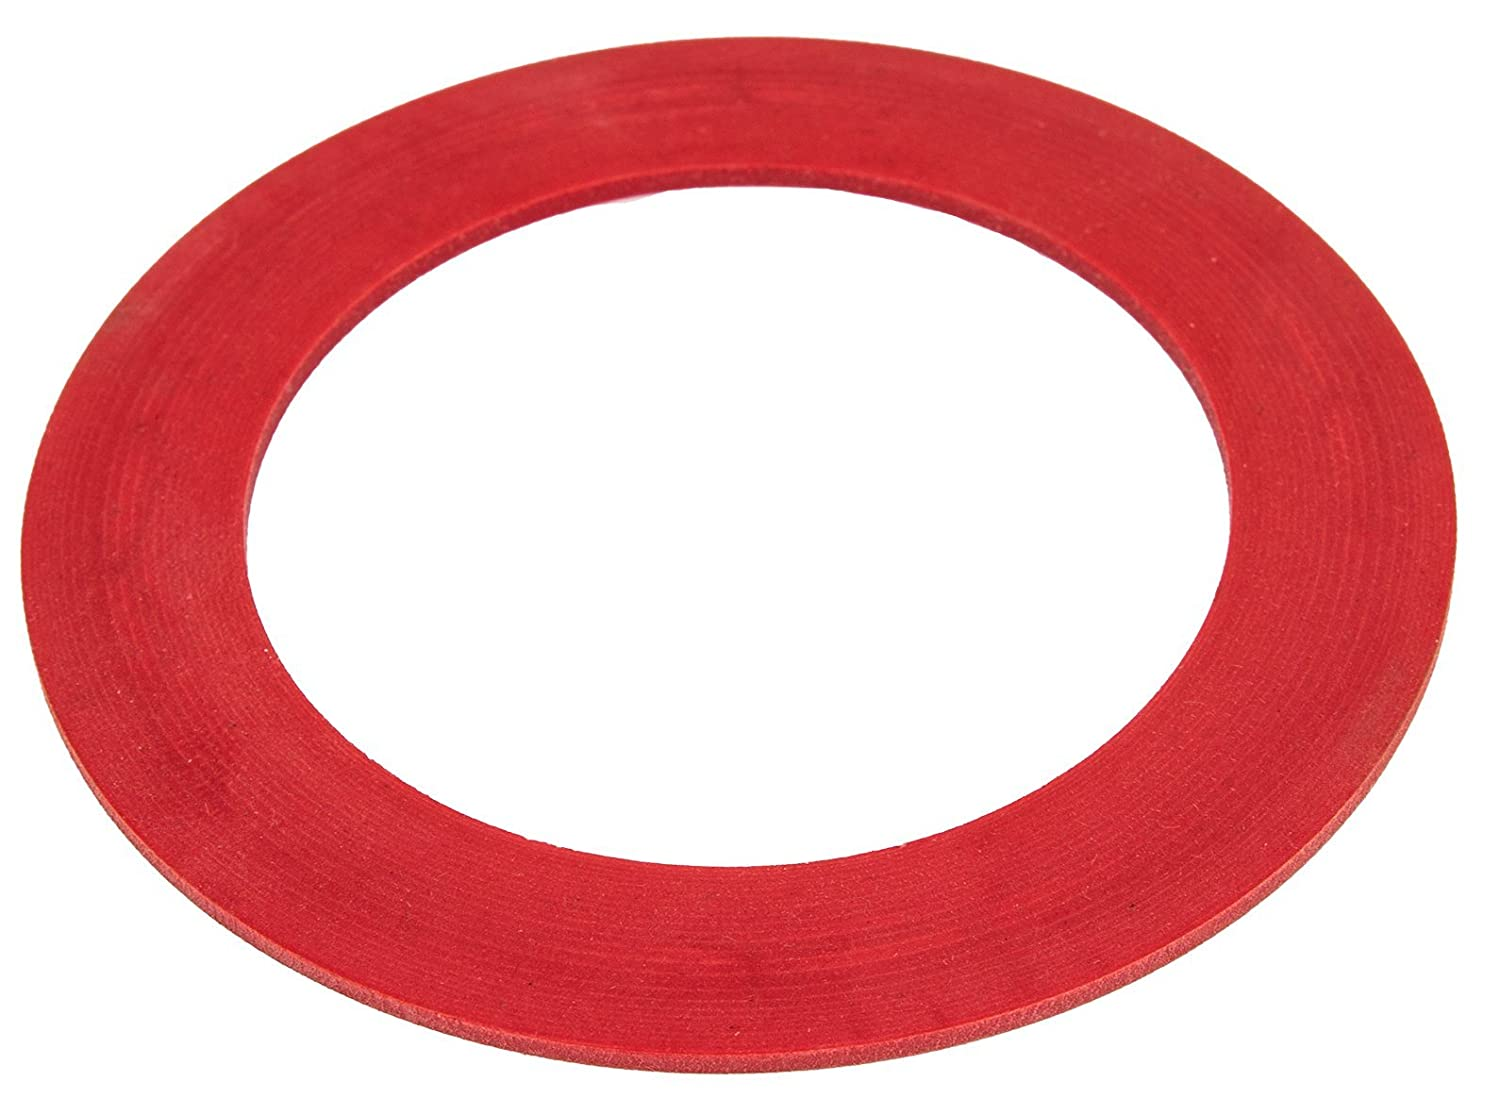 Blendin Replacement Gasket, Compatible with Hamilton Beach Wave Action and Wave Station Blenders